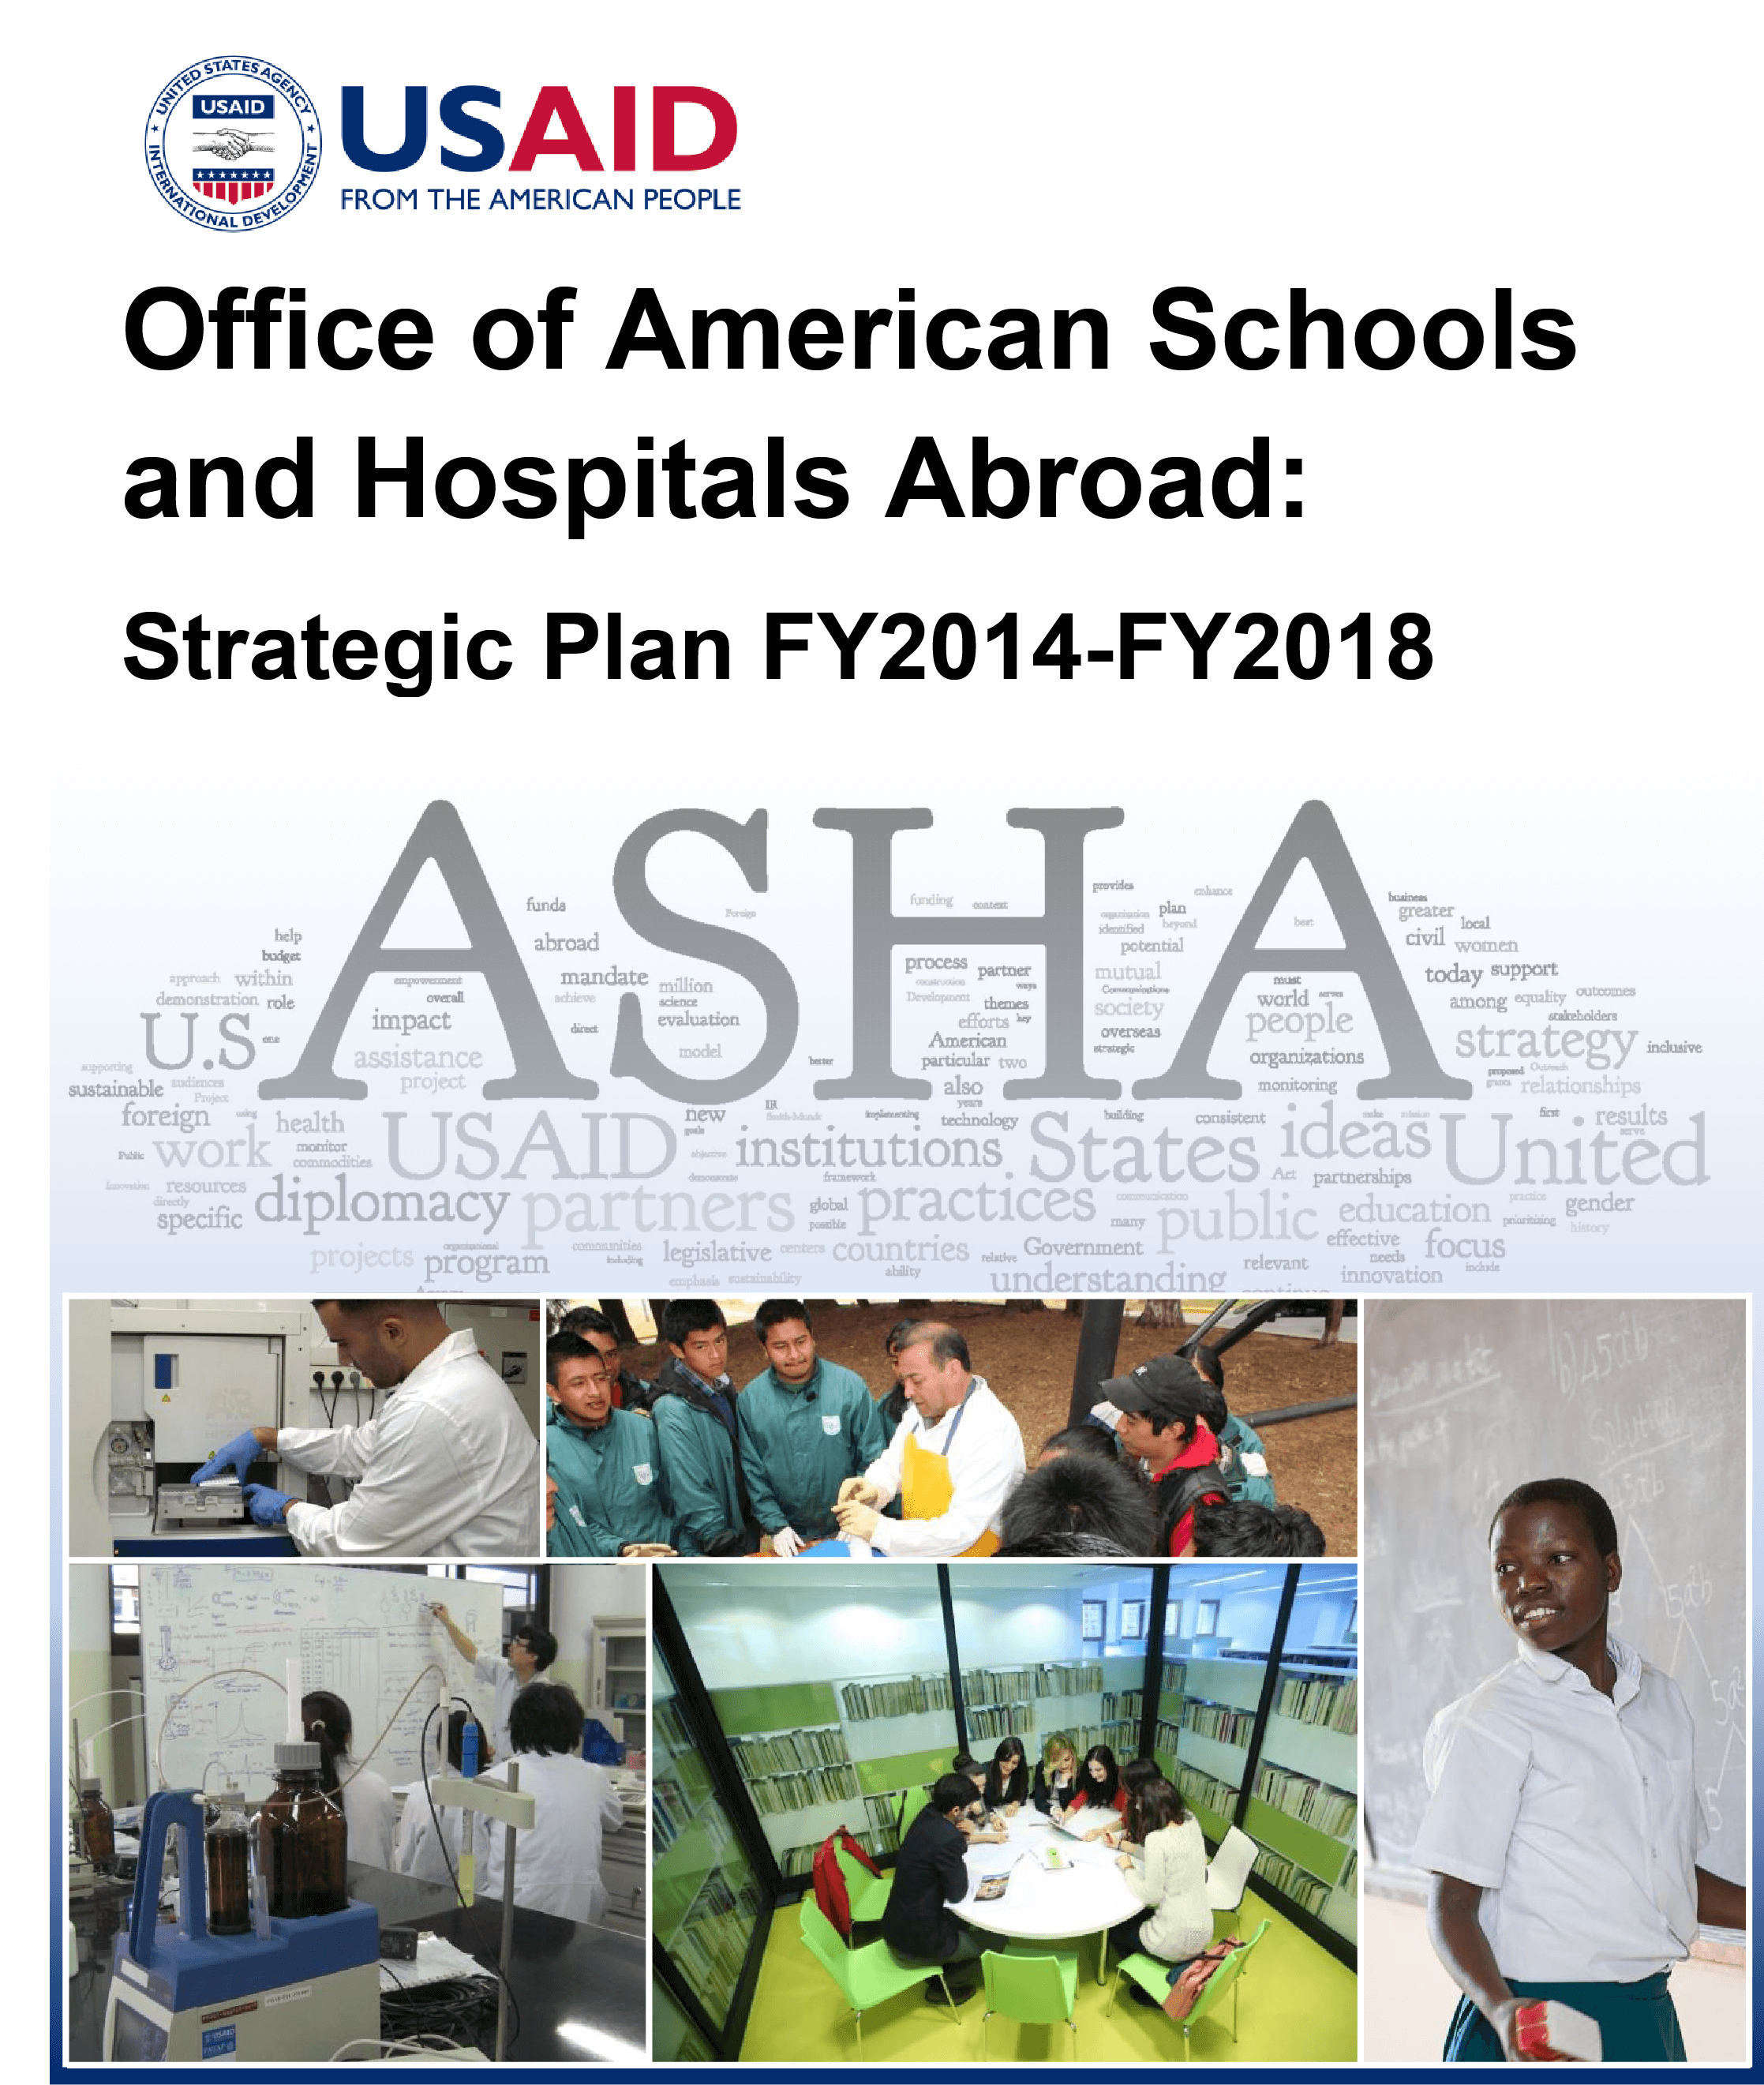 USAID/ASHA Strategic Plan for Fiscal Years 2014-2018